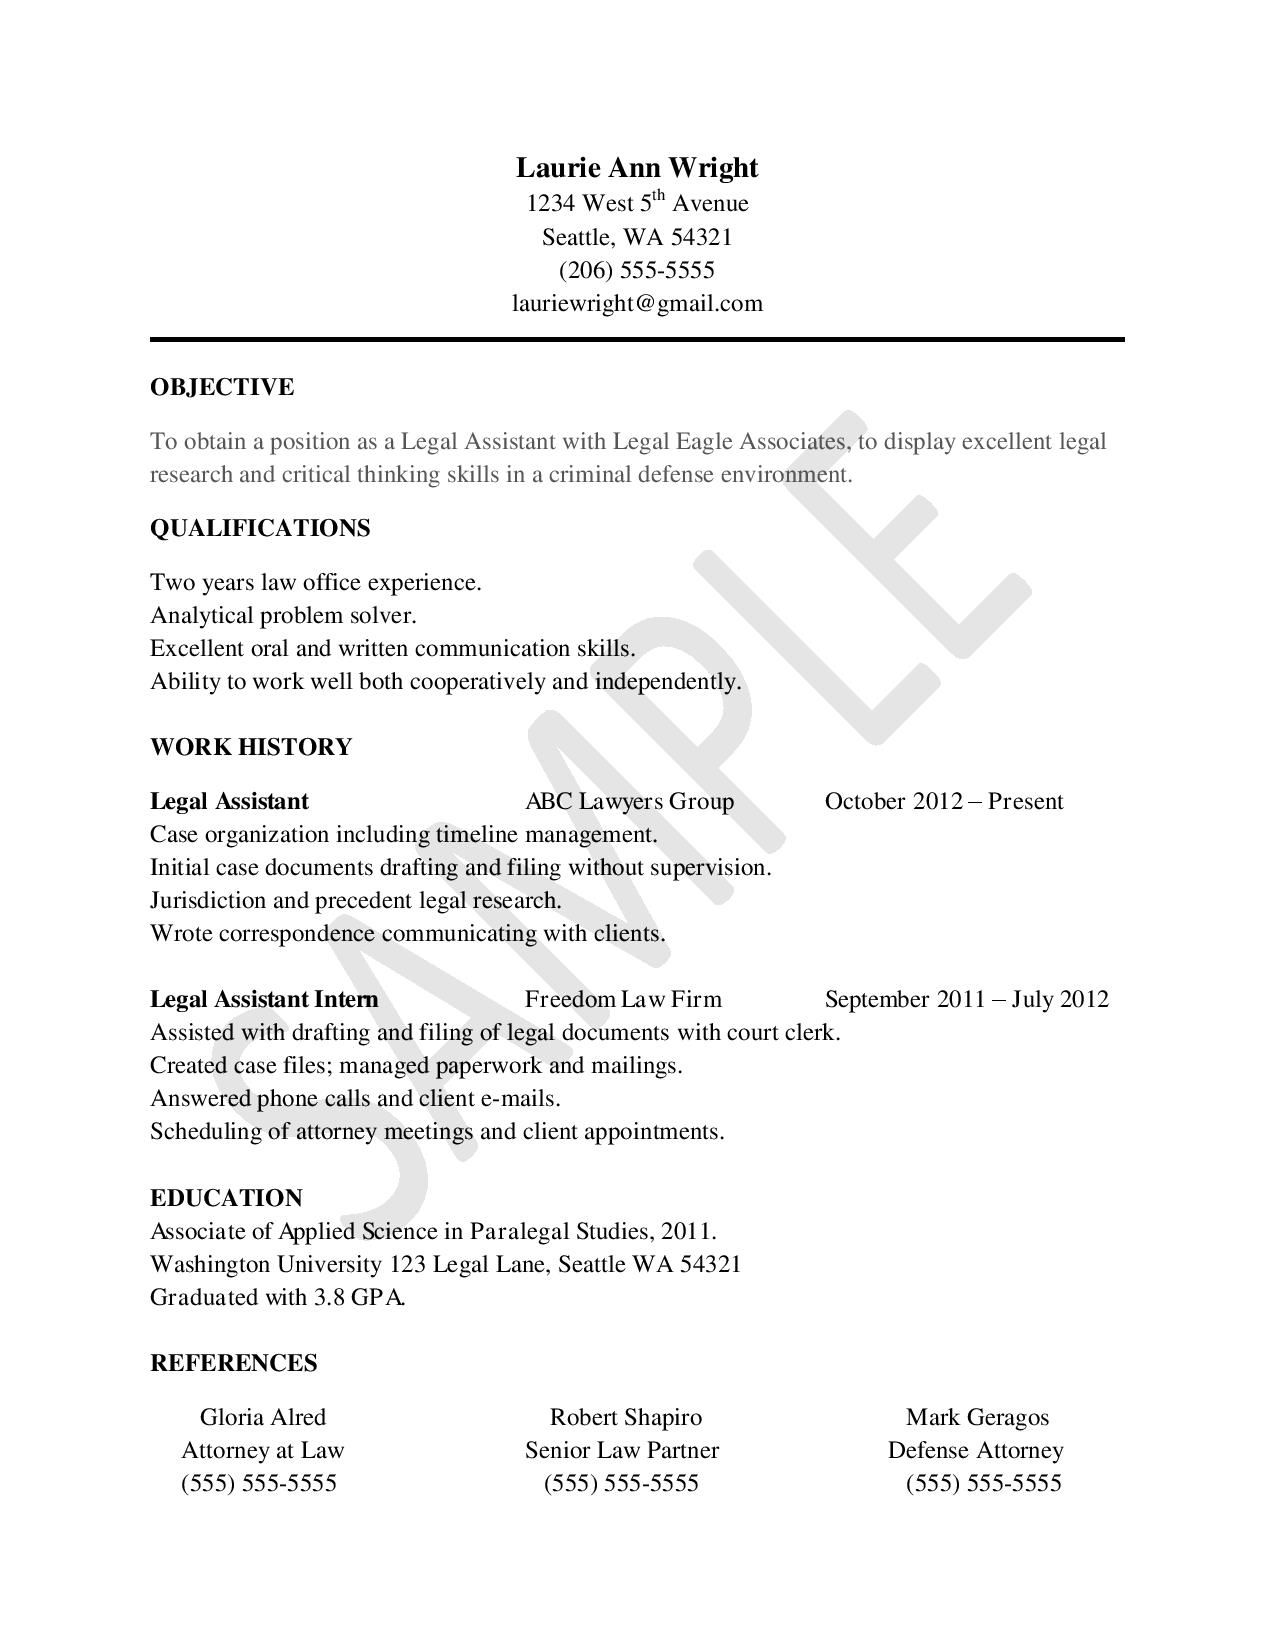 Sample Resume For Legal Assistants Downloadable Resume Template Resume Examples Resume Template Examples